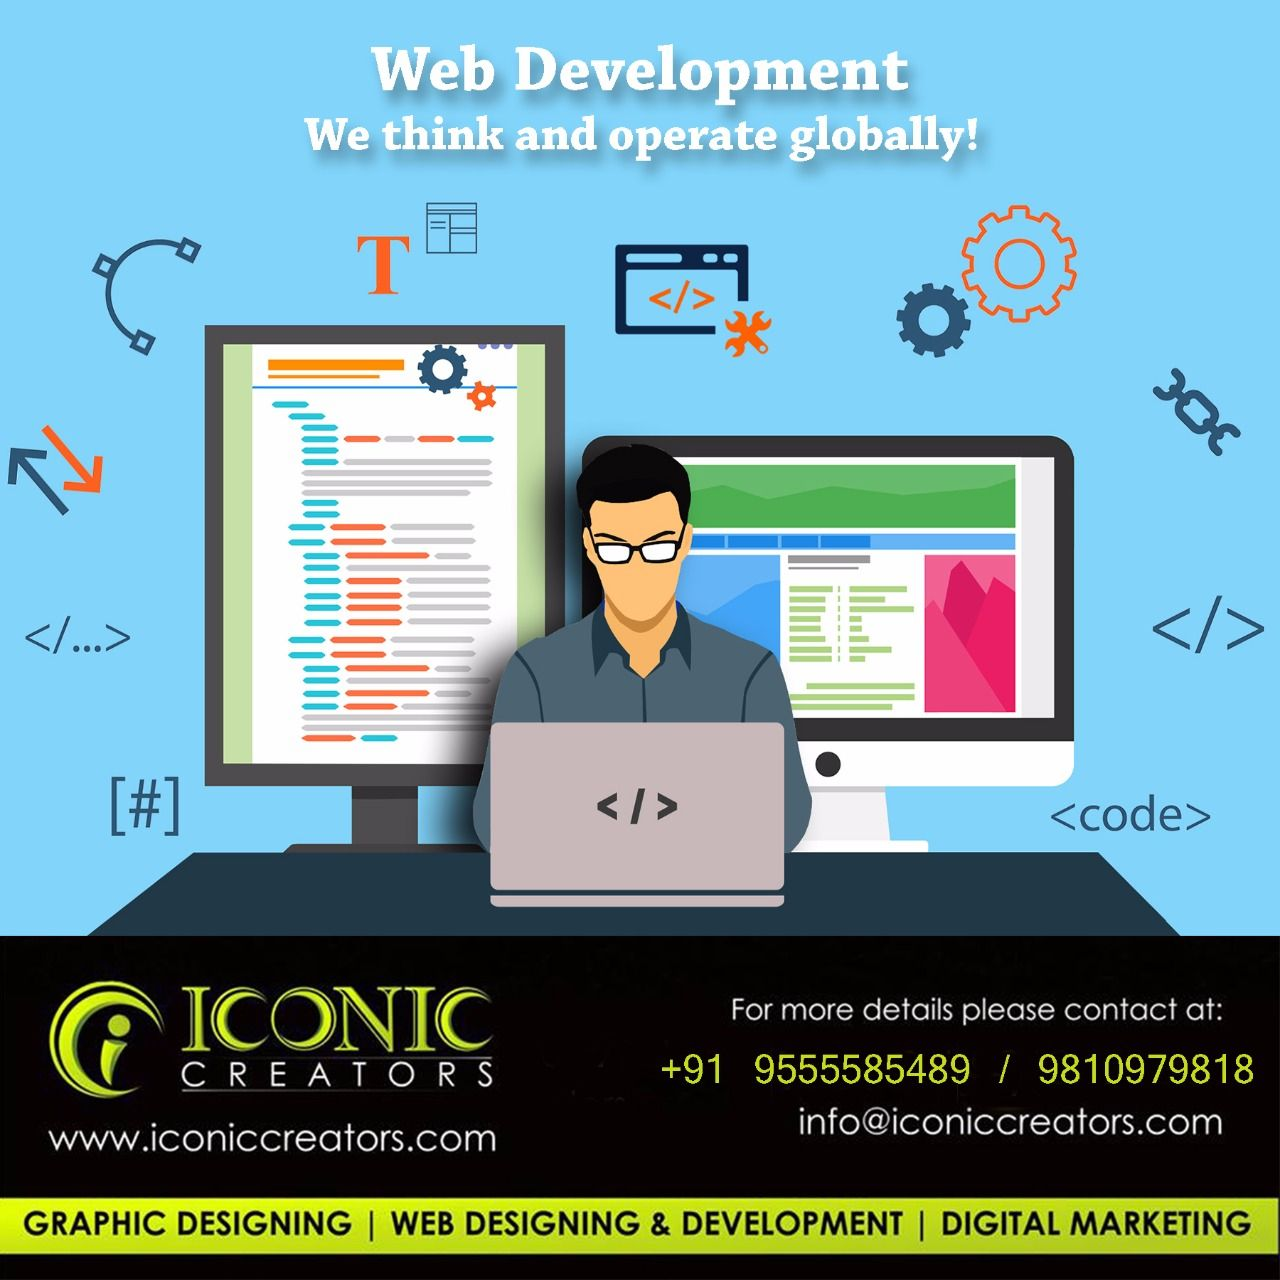 As A Top Web Design And Development Company Iconic Creators Is Proud To Offer Complete W Software Development Web Development Design Internet Marketing Agency